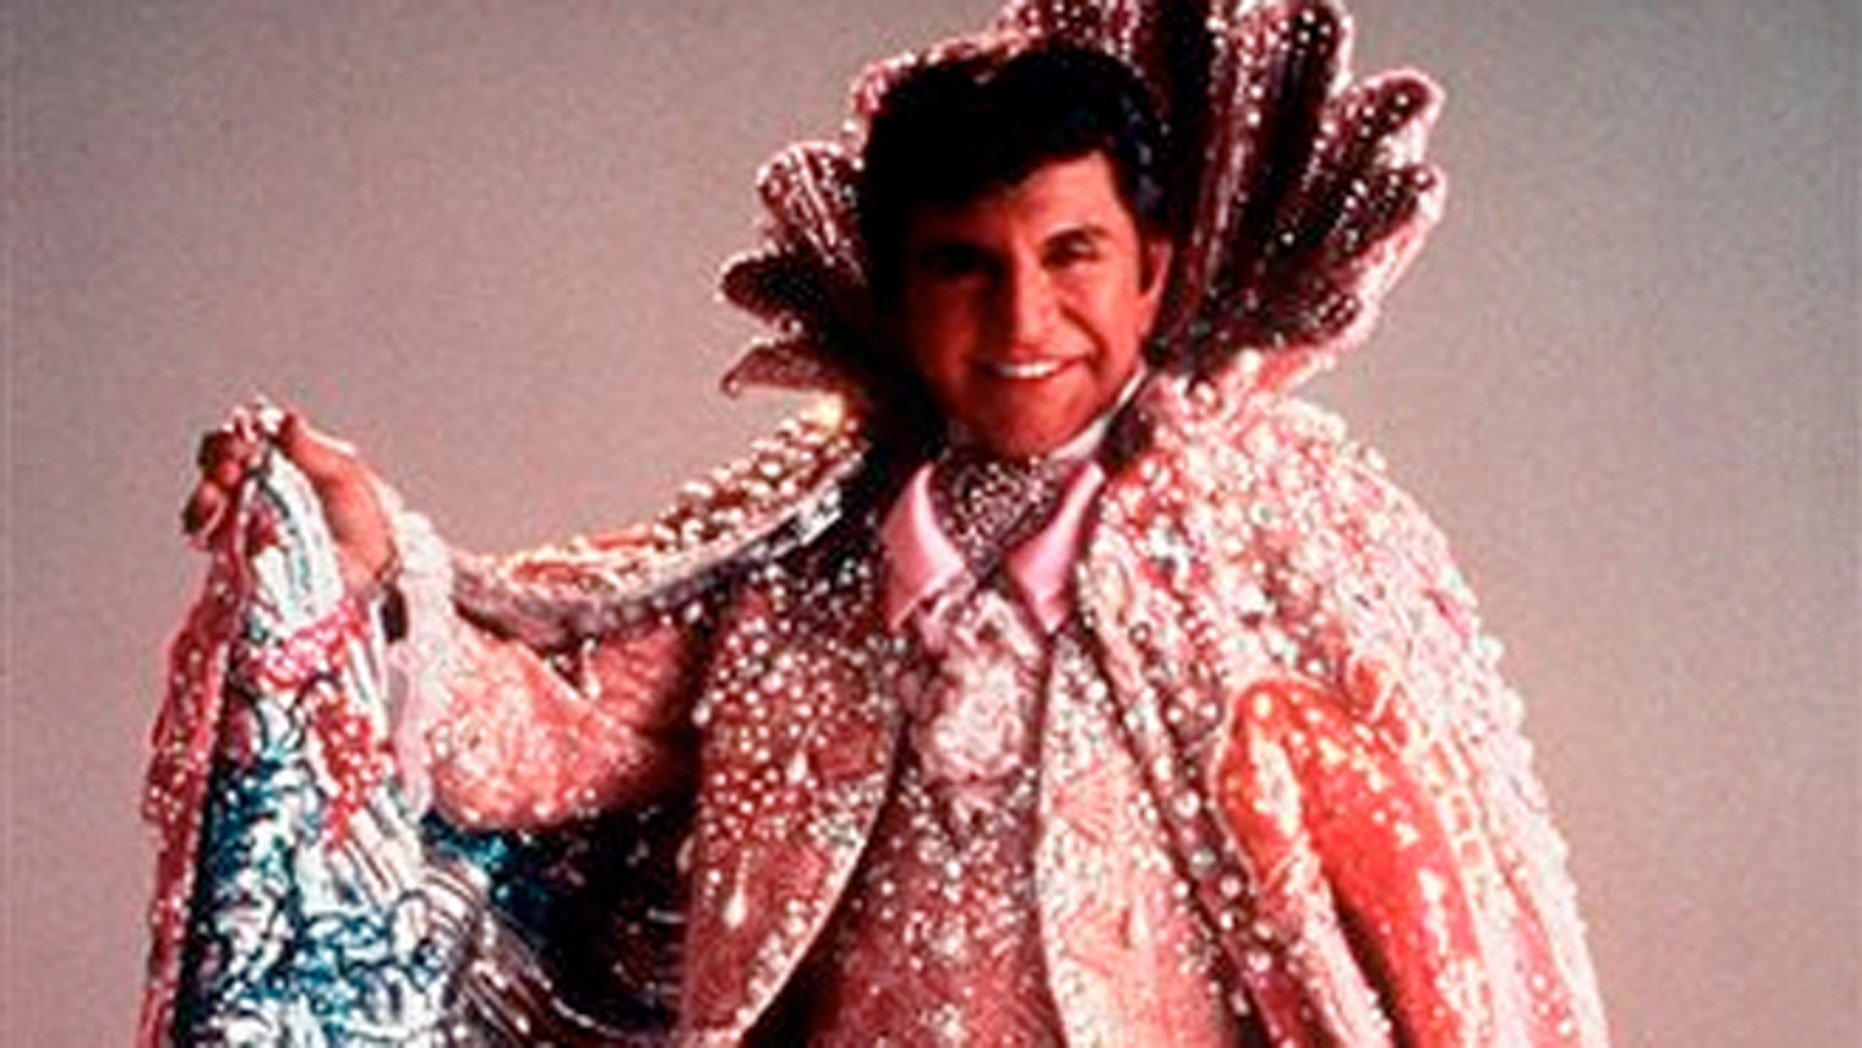 This week, a casino on the Las Vegas Strip is bringing some of Liberace's most decadent possessions back into the public eye.